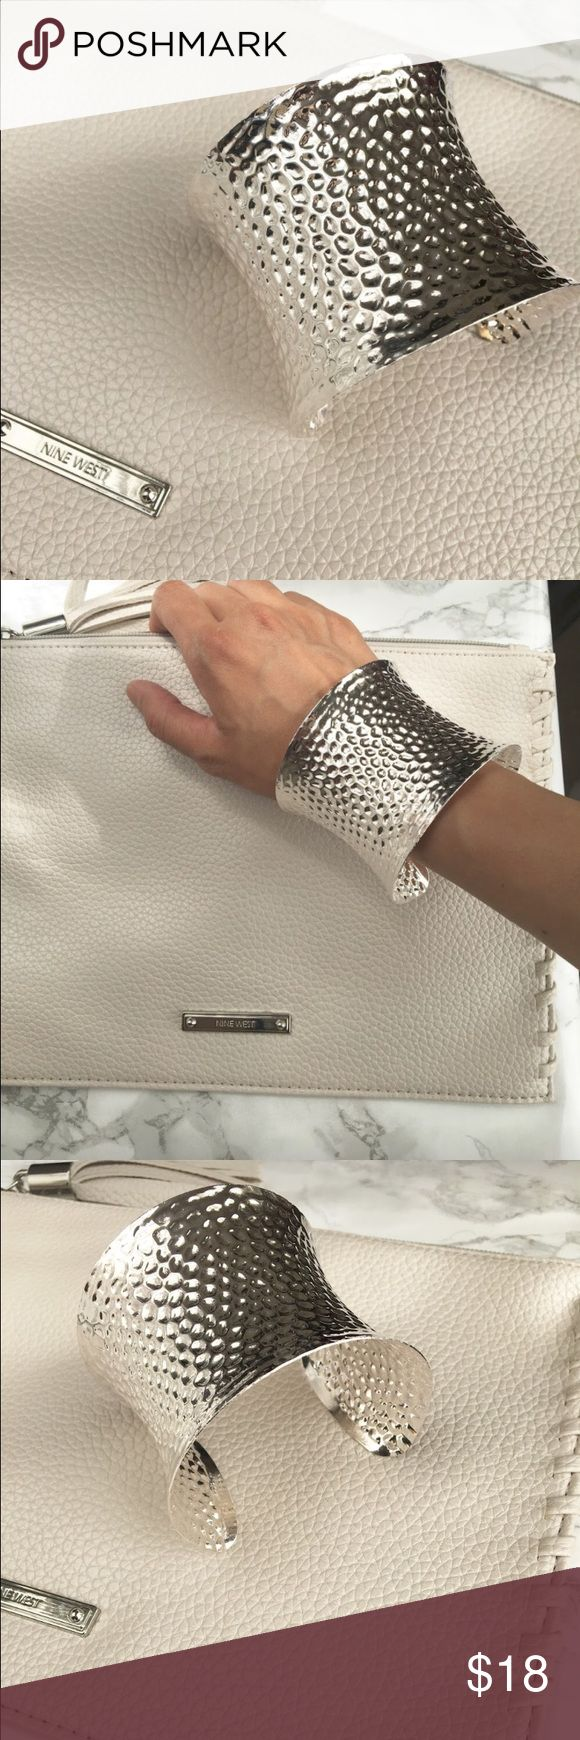 """Celebrity Stanley  statement cuff bracelet Large statement cuff bracelet . Bold bohemian style. In metallic silver . Also comes in gold. High style 2.5"""" wide. Adjustable . Please keep away from direct contact with perfume, lotions n cream of any kind. ❤️❤️❤❤️️👉🏼Follow me on  📸INSTAGRAM: @chic_bomb  and 💁🏻📘FACEBOOK: @thechicbomb❤️❤️❤️❤️ CHICBOMB Jewelry Bracelets"""